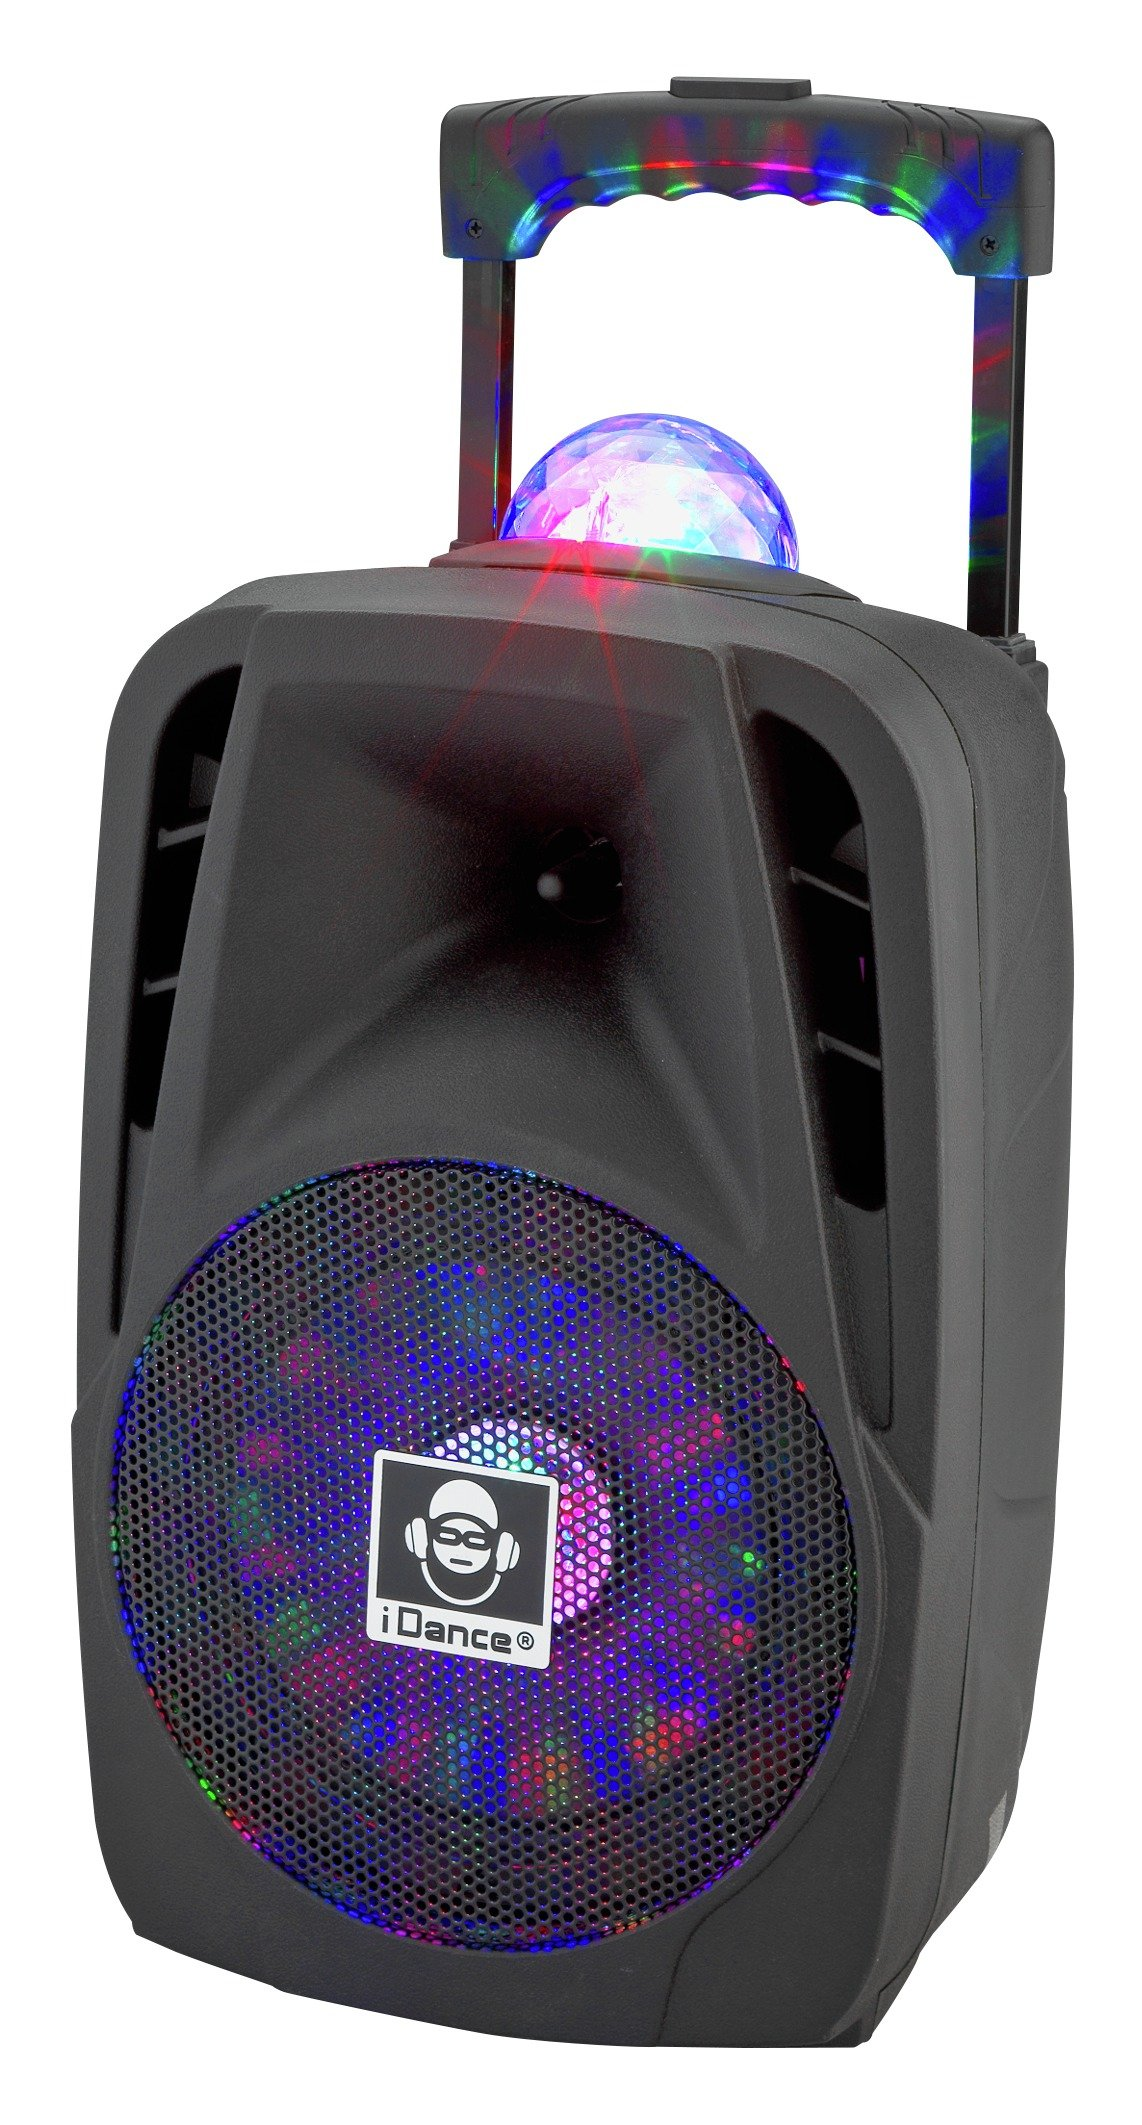 Trolley Lautsprecher Idance Details About Idance Groove 216 Portable Bluetooth Karaoke Machine Bluetooth Speaker Rrp99 99